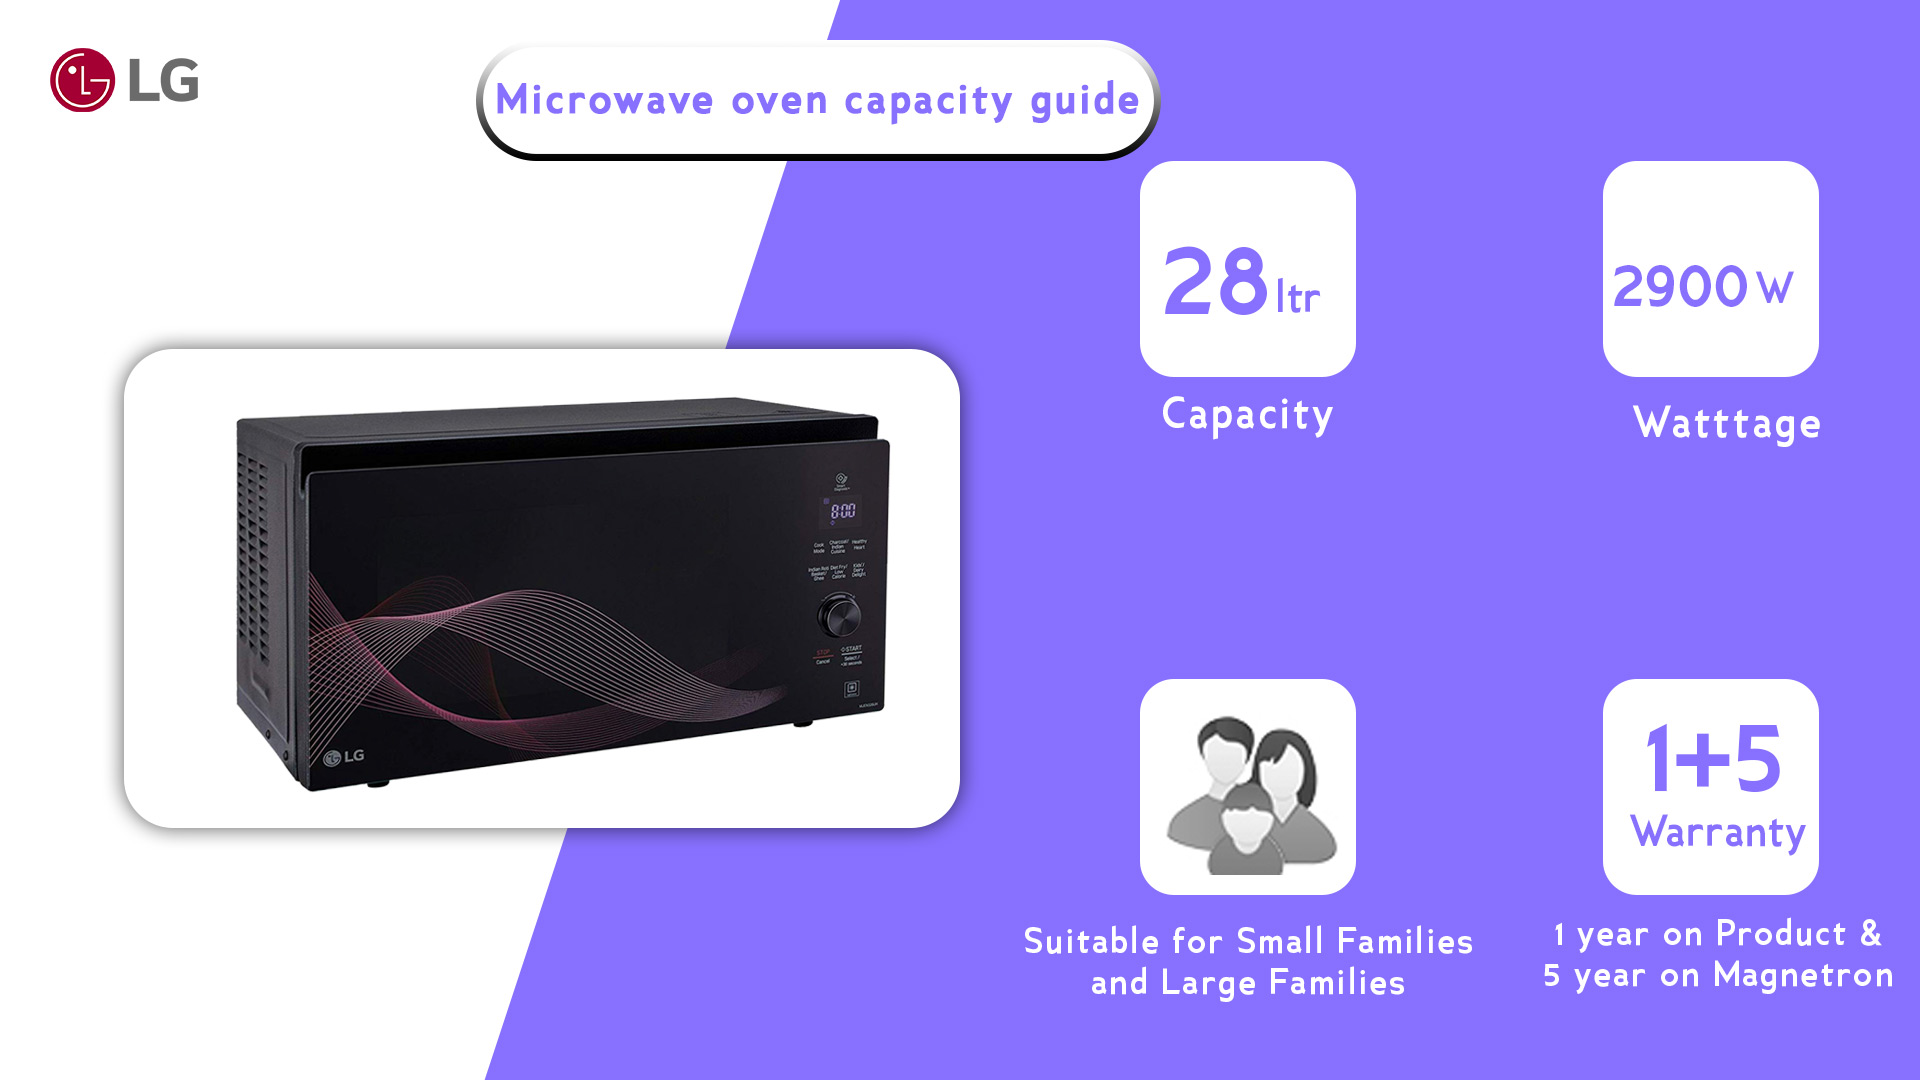 Microwave-oven-capacity-guide